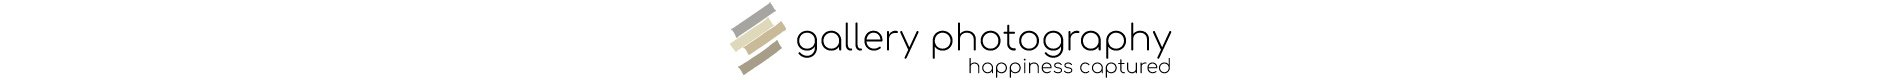 Gallery photography logo image.